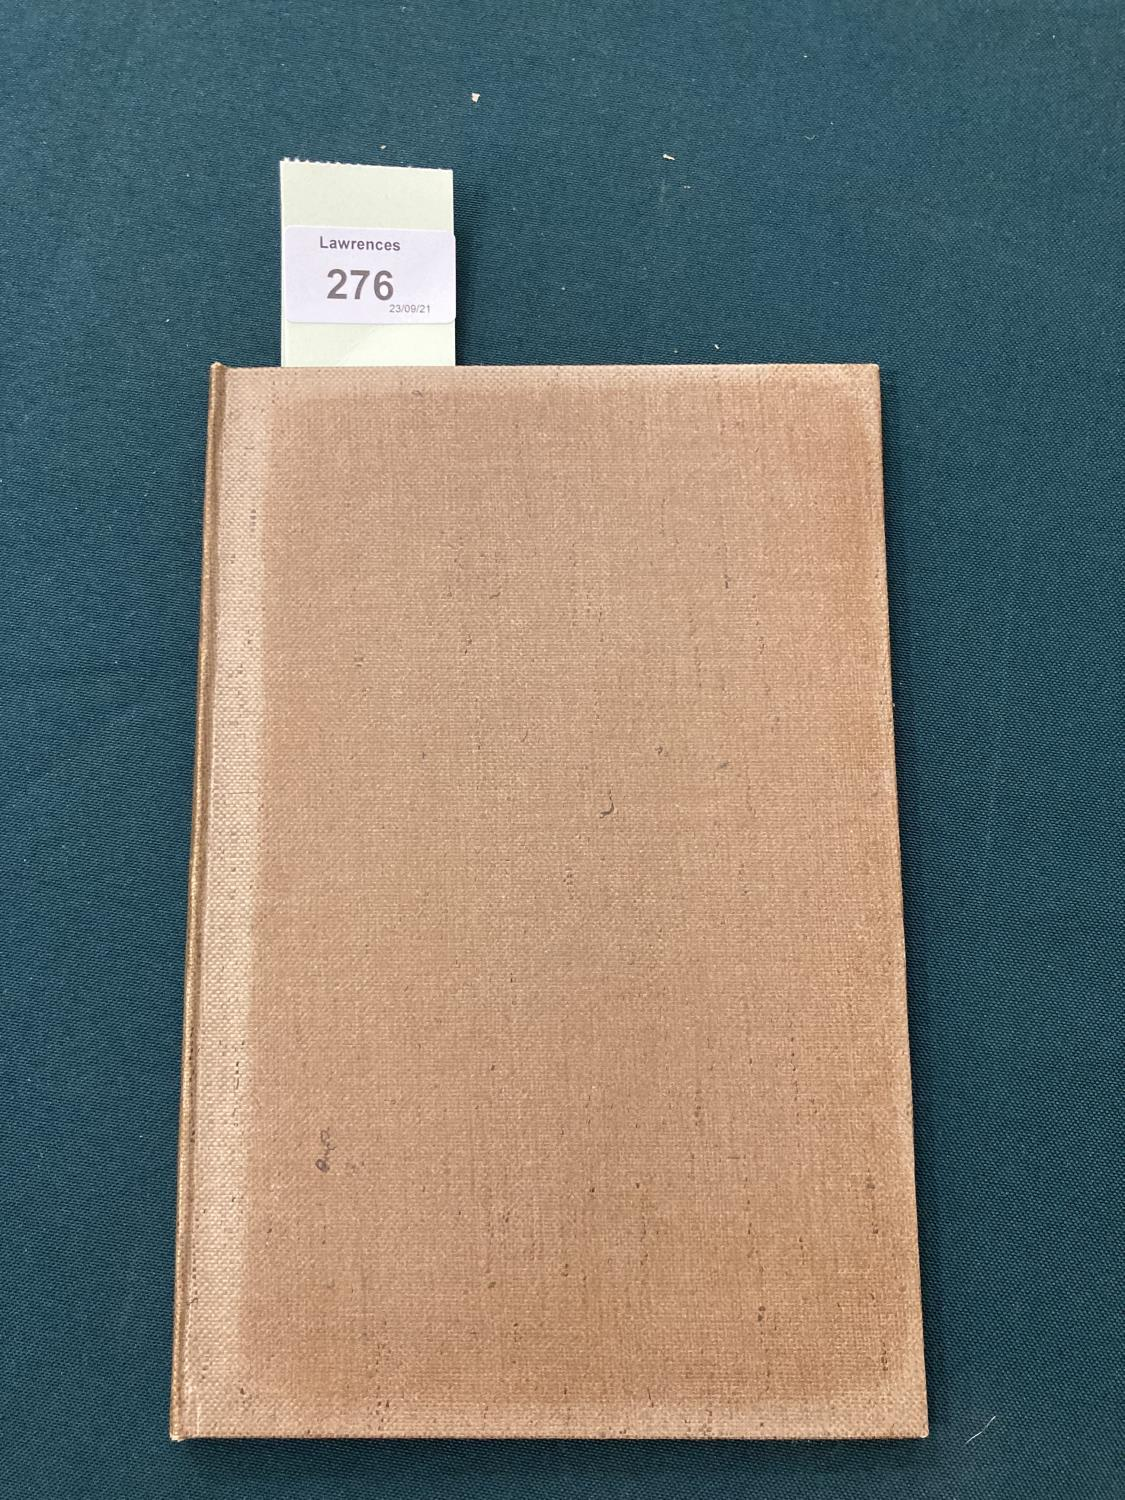 Sassoon, Siegfried. Lingual Exercises for Advanced Vocabularies, one of 99 copies, inscribed by - Image 3 of 6